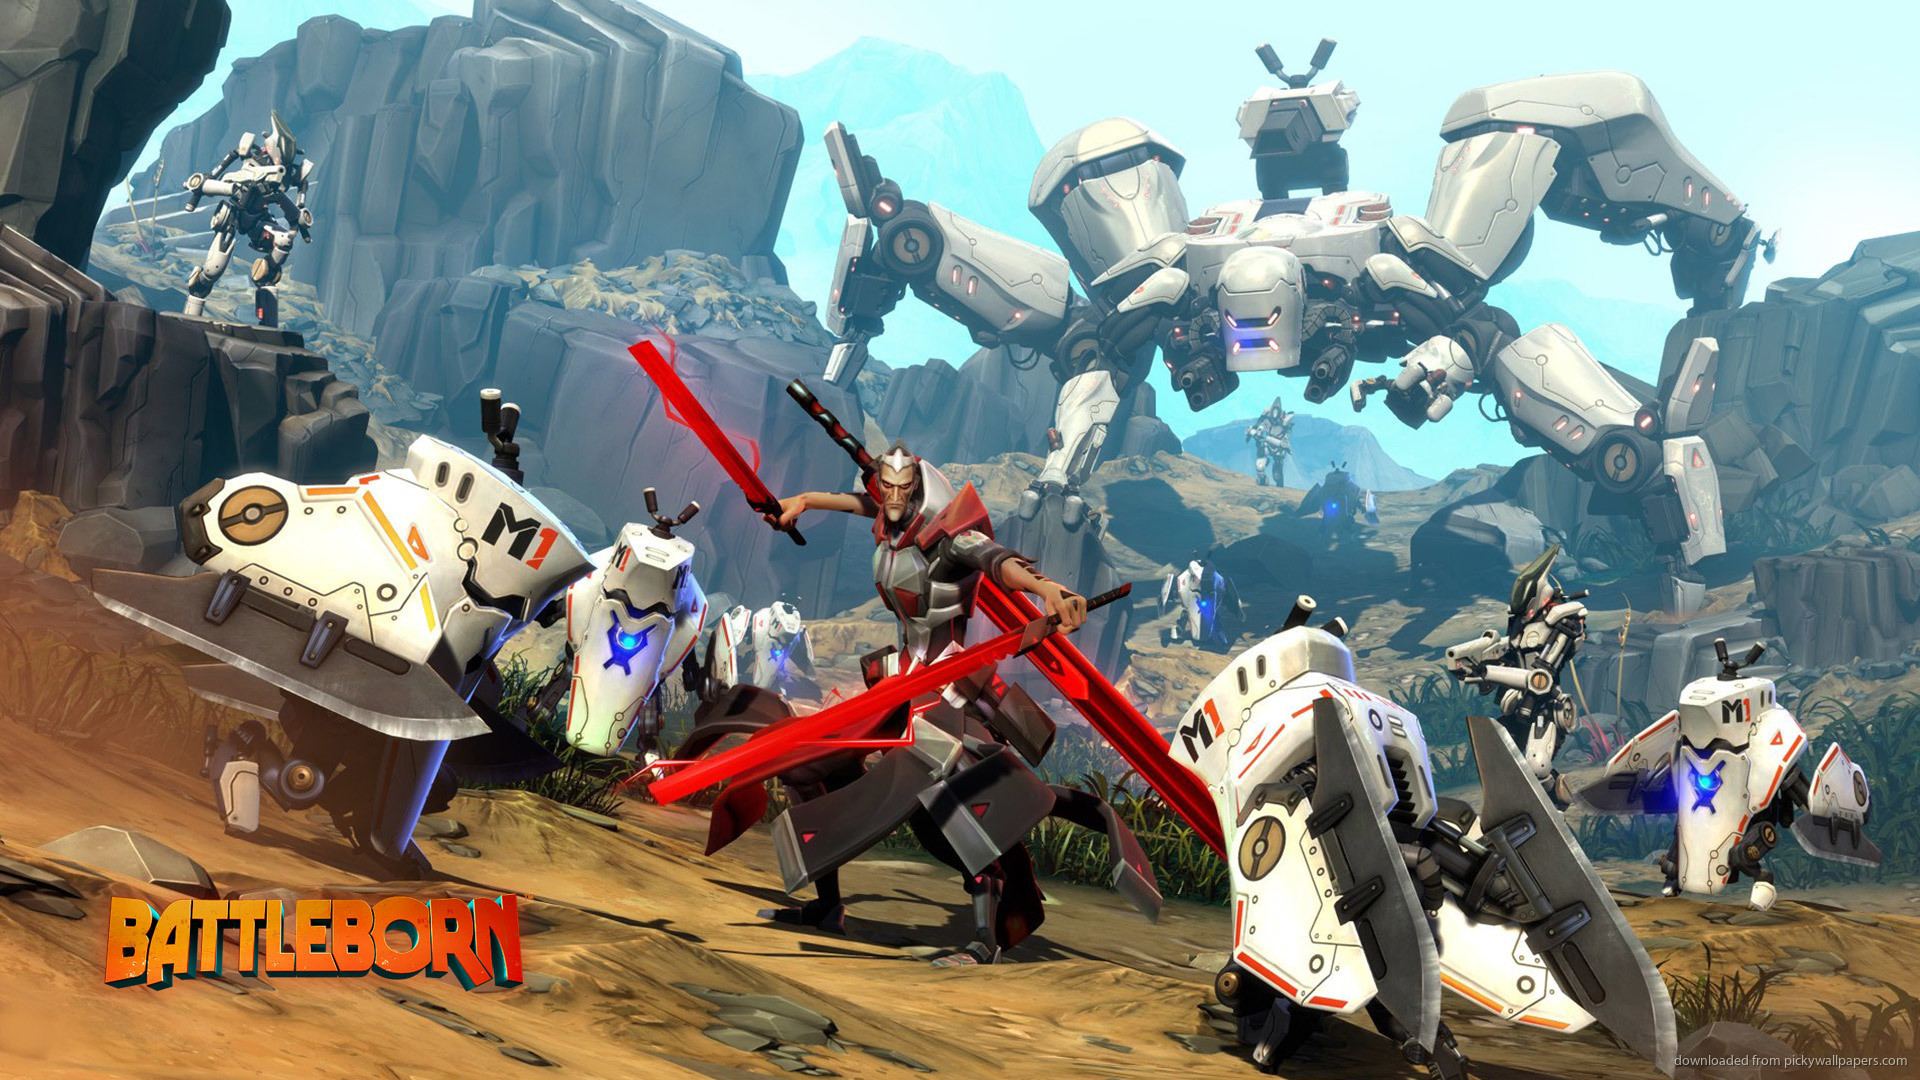 1920x1080 2016 Battleborn Video Game Wallpaper picture